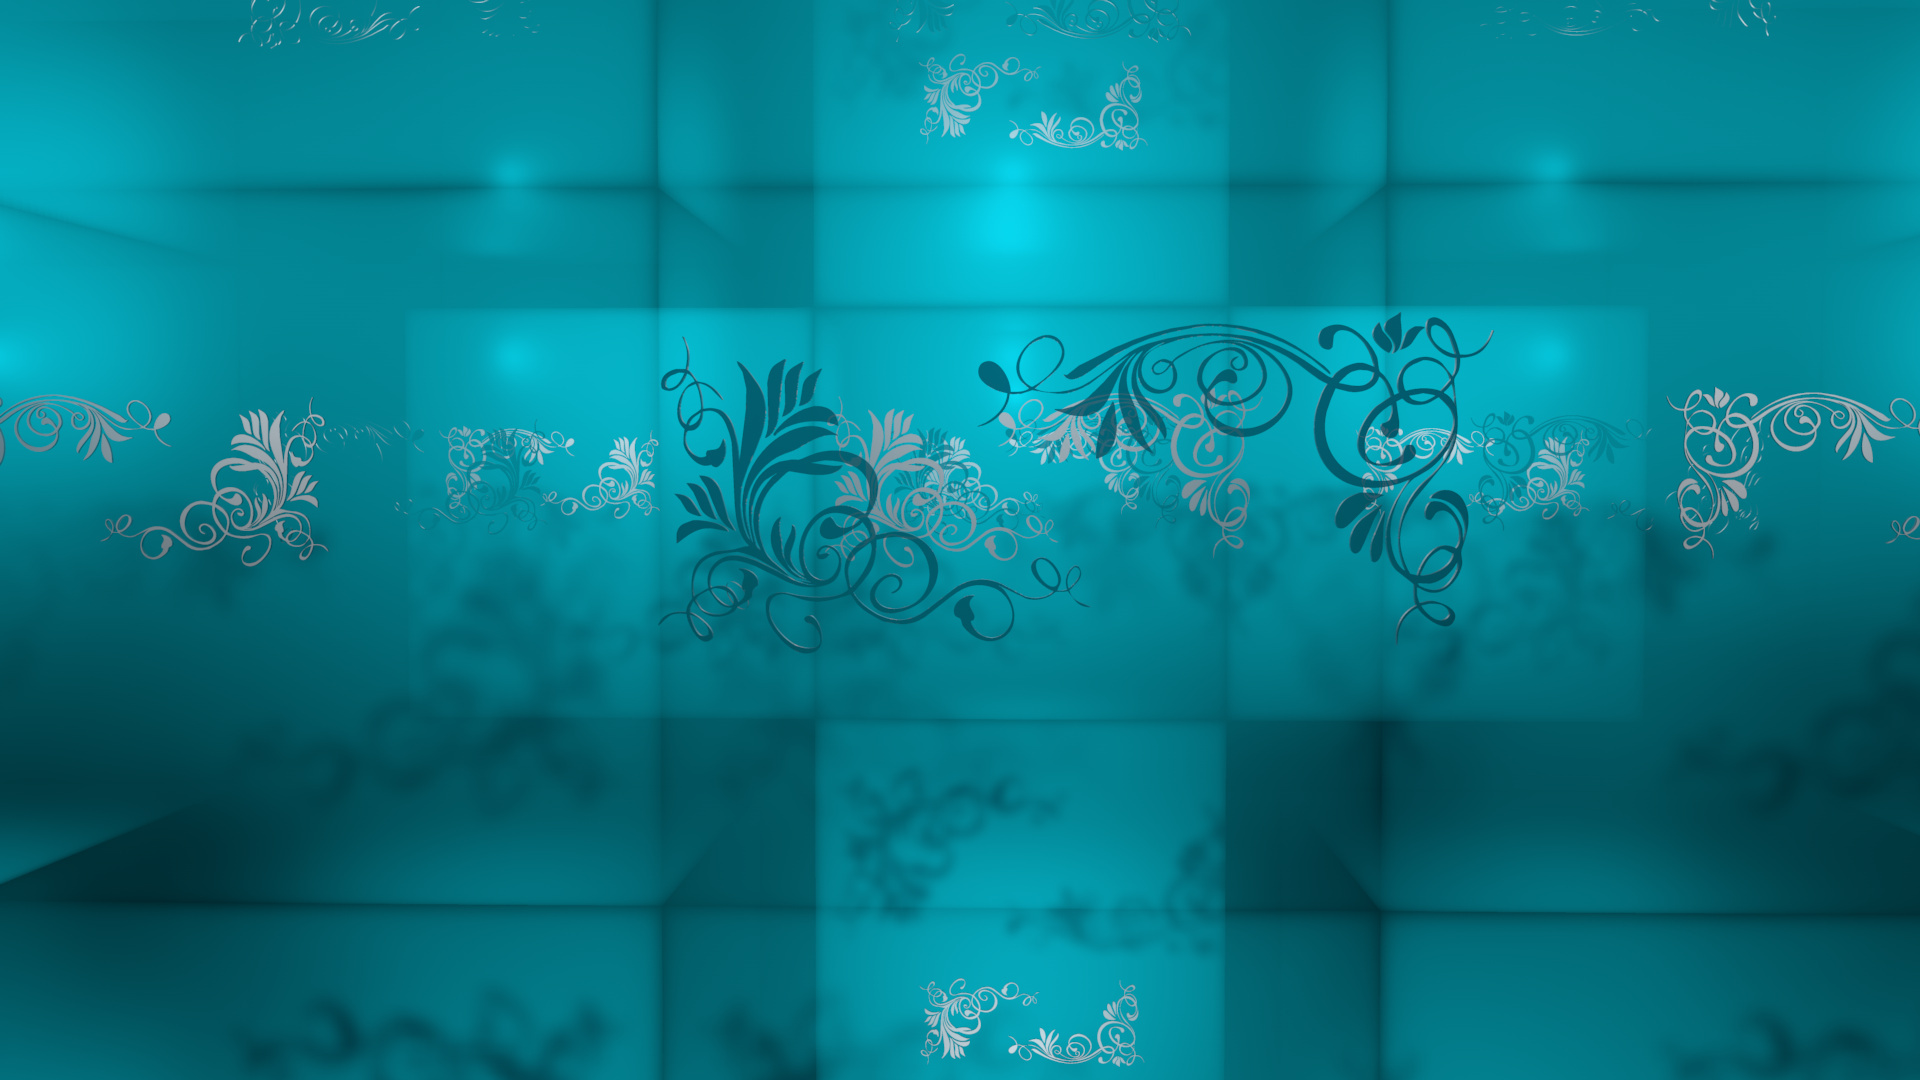 Turquoise hd wallpaper background image 1920x1080 id 430704 wallpaper abyss - Turquoise wallpaper for walls ...